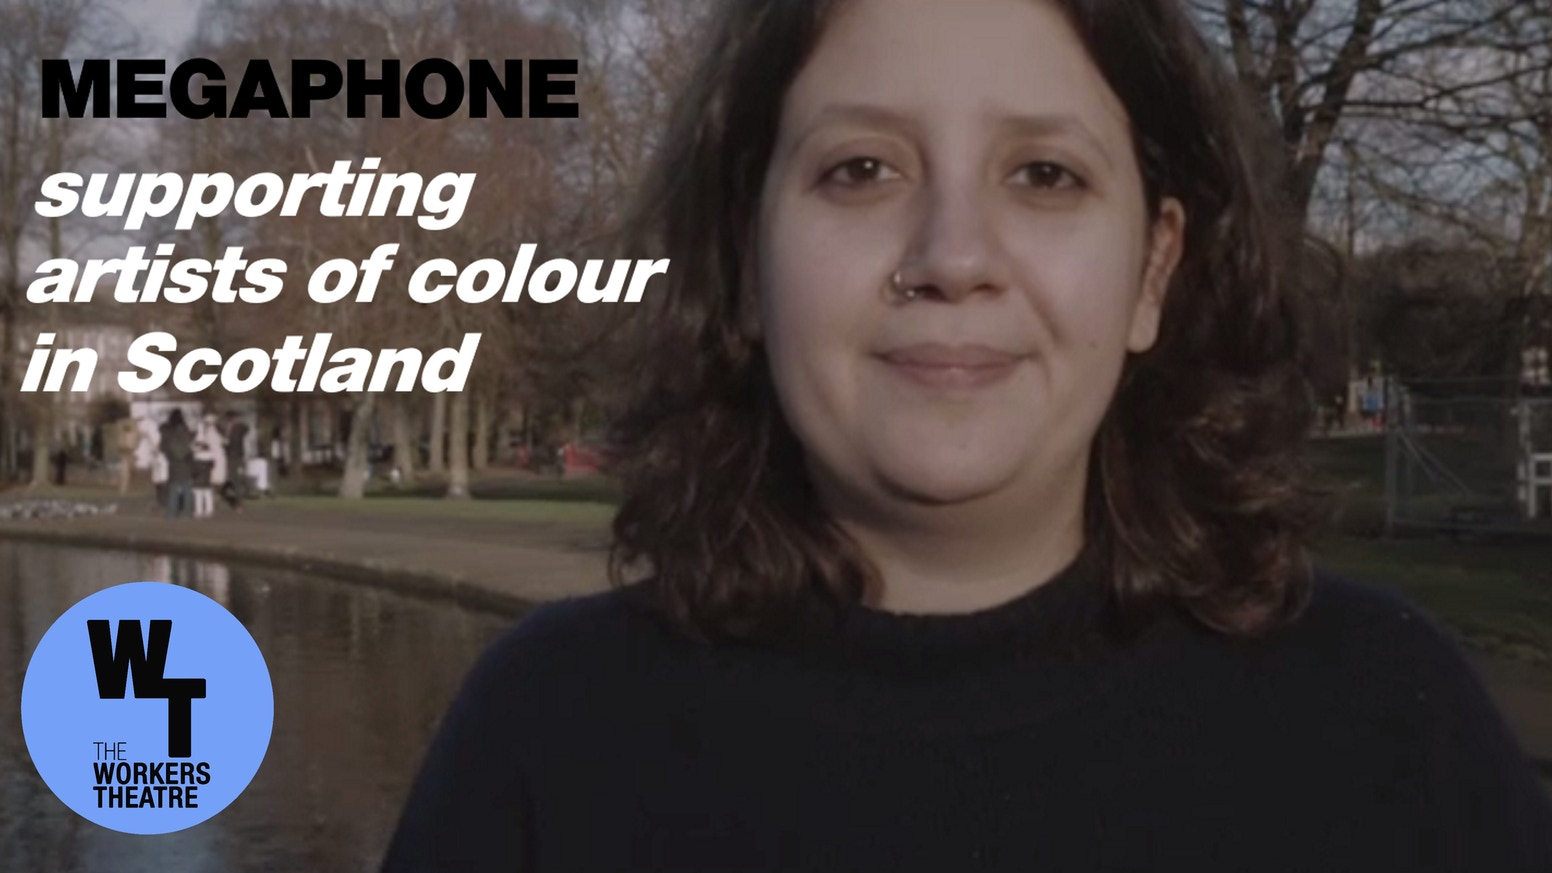 Providing three artists of colour in Scotland a chance to develop their work and have their voices heard loud and clear